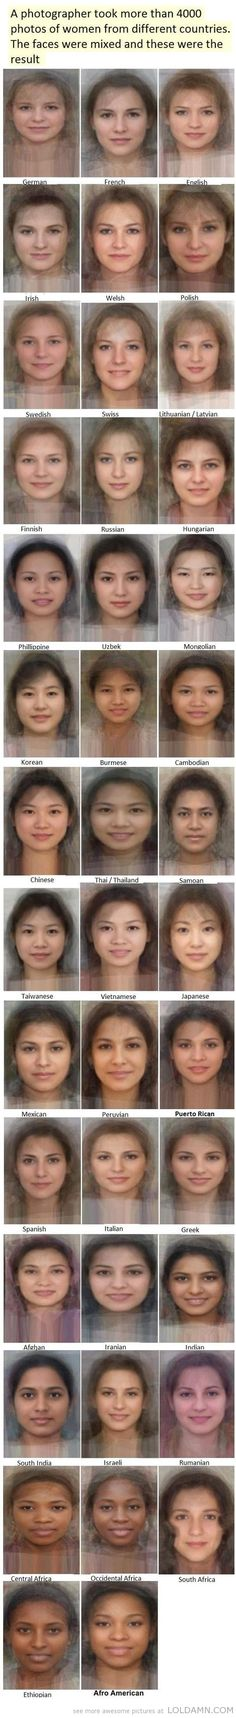 face from women from different countries Average face from women from different countries - Awesome!Average face from women from different countries - Awesome! Average Face, Average Person, Average Girl, Wow Photo, Different Countries, Cool Stuff, The More You Know, Belle Photo, Mind Blown